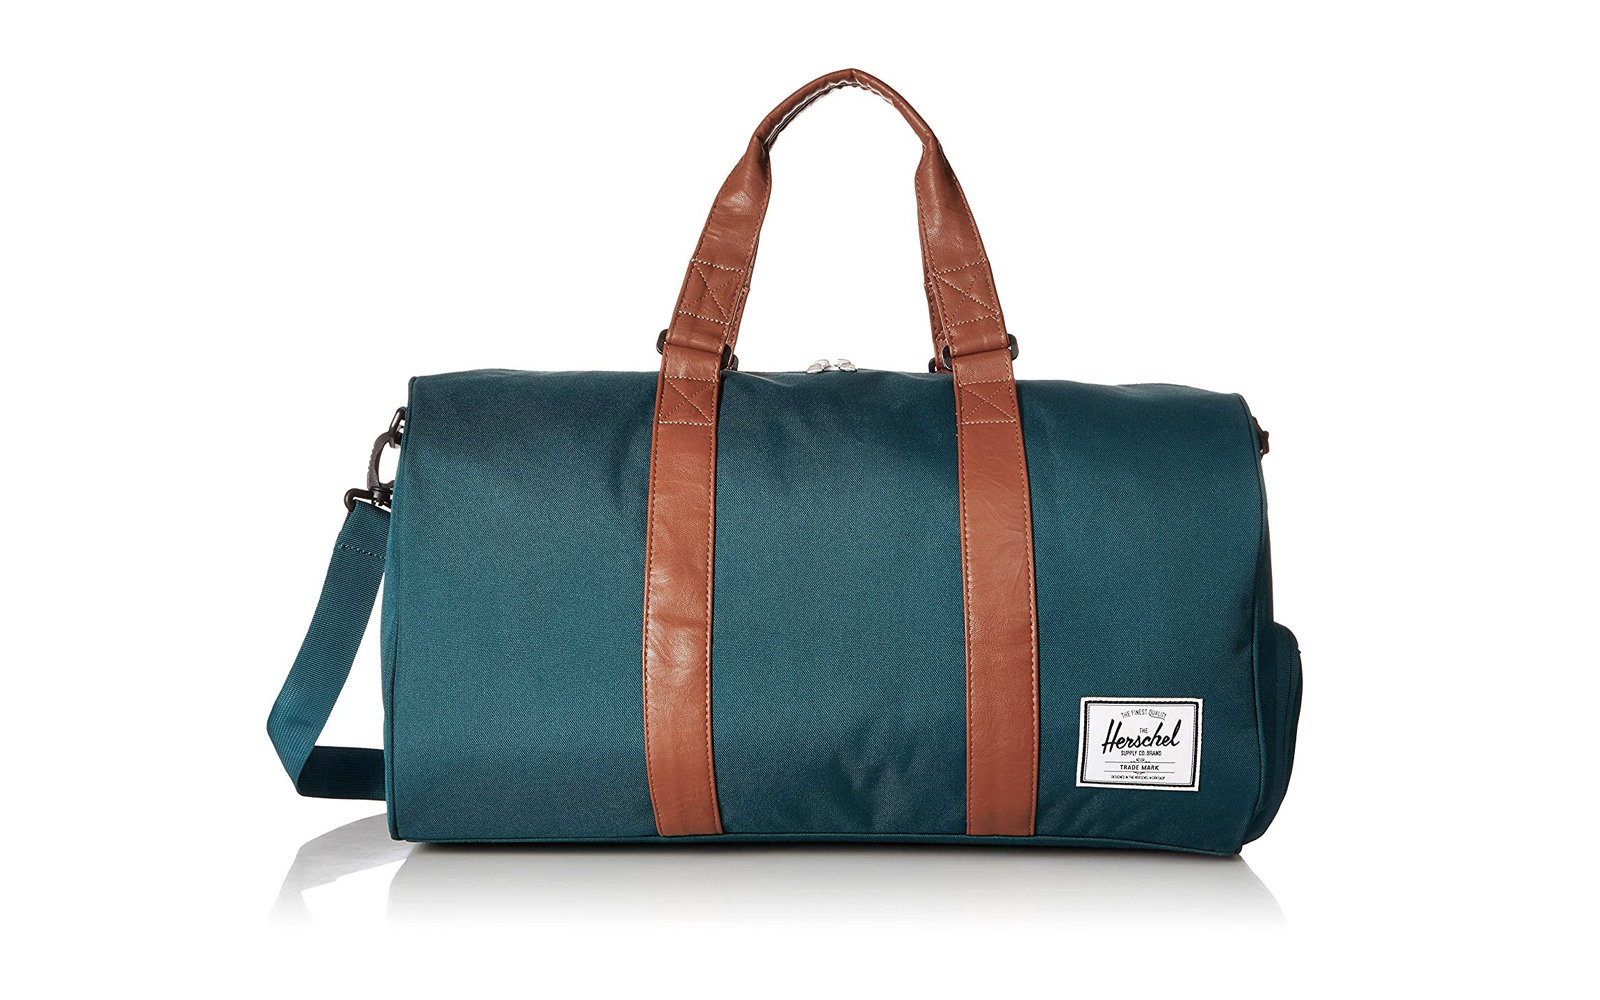 179bf31f55 Novel Duffel Bag. herschel weekender